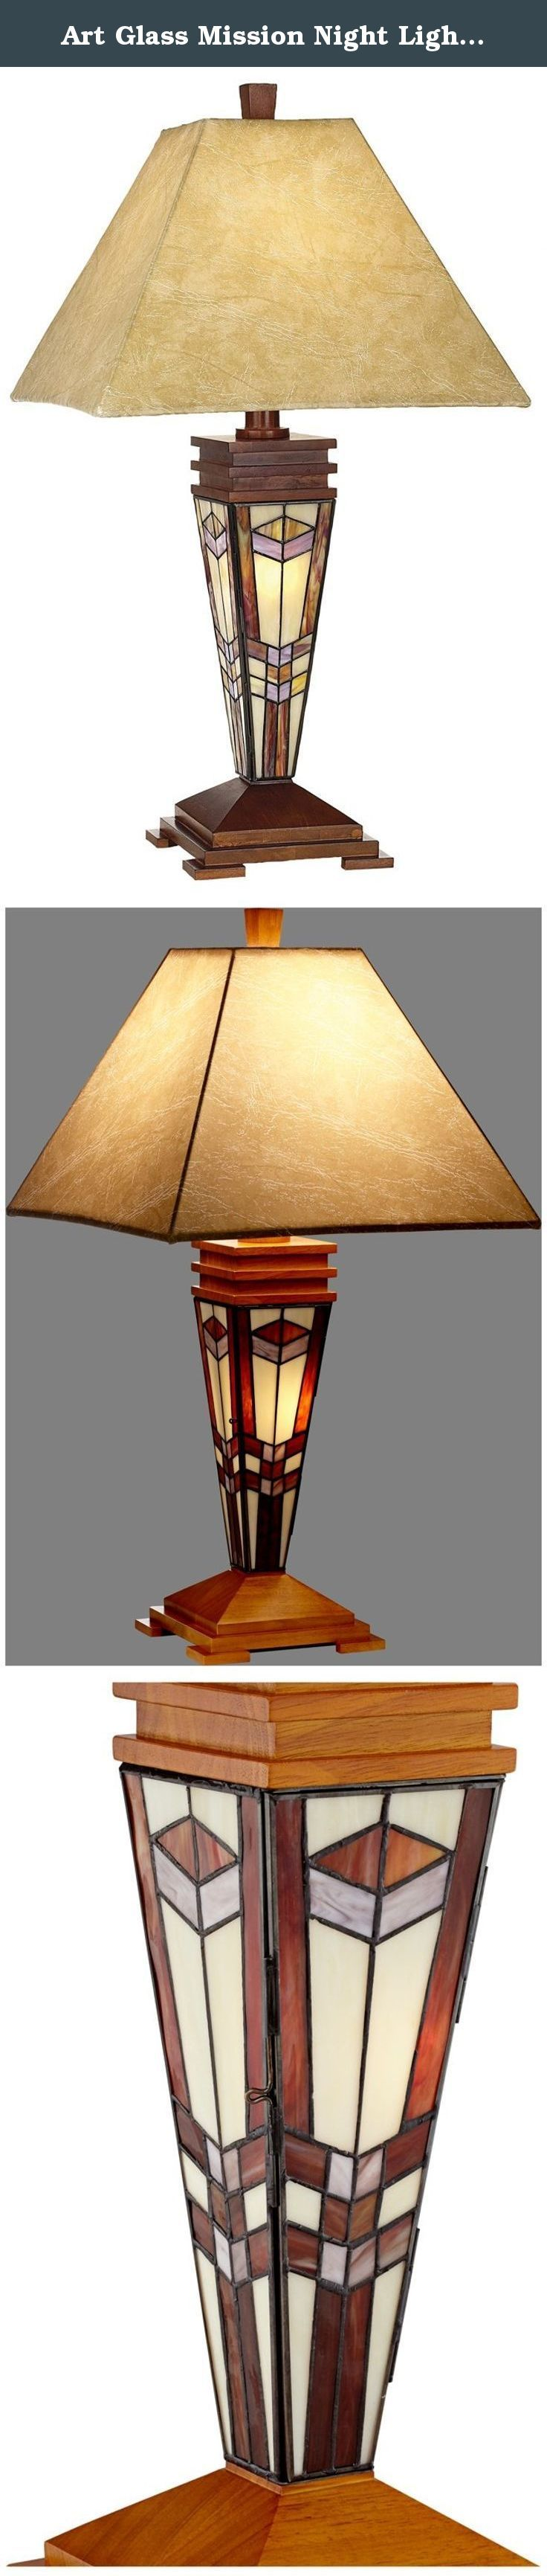 """Art Glass Mission Night Light Table Lamp. Decorate your home with this Tiffany-style table lamp for a timeless look. Has a wood base with a faux leather palace shade. 4-position switch. Tiffany-style art glass. - Art glass Mission style table lamp. - With built-in night light in base behind hand-cut Tiffany style glass. - Takes one 150 watt bulb (not included). - Includes one 7 watt night light bulb. - 30"""" high. - Base with 100 pieces of hand-cut glass. - Glass assembled using traditional..."""